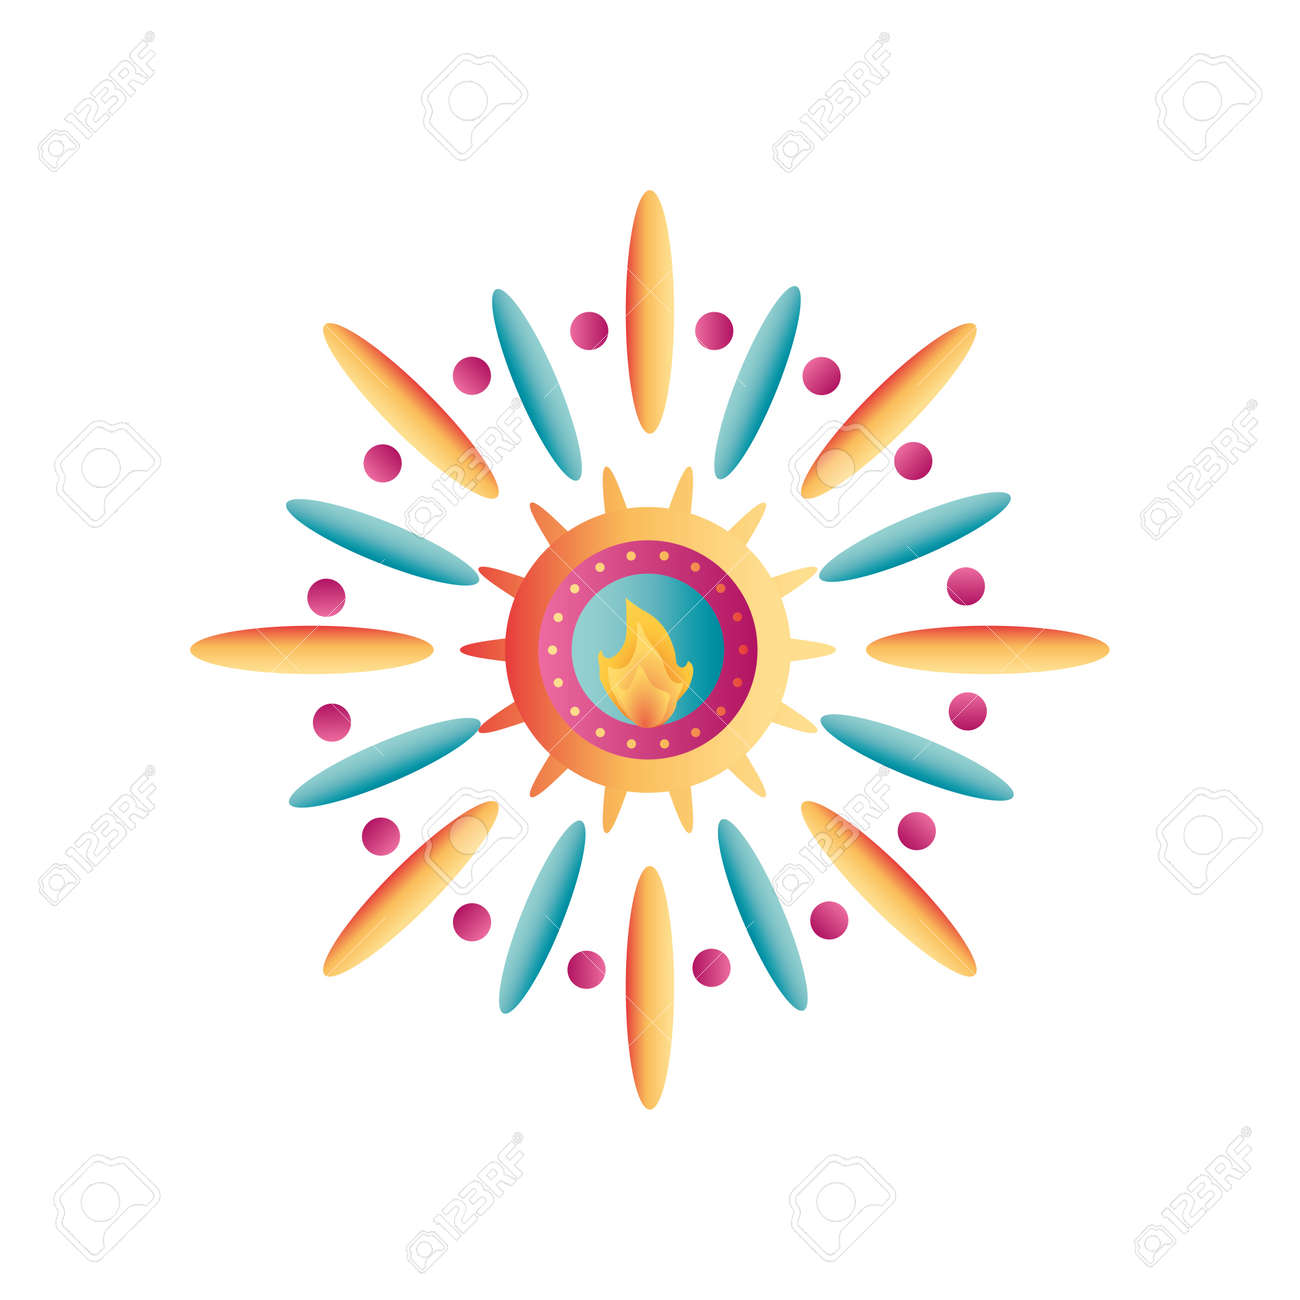 festival of lights, candle flame in white background vector illustration design - 156510021